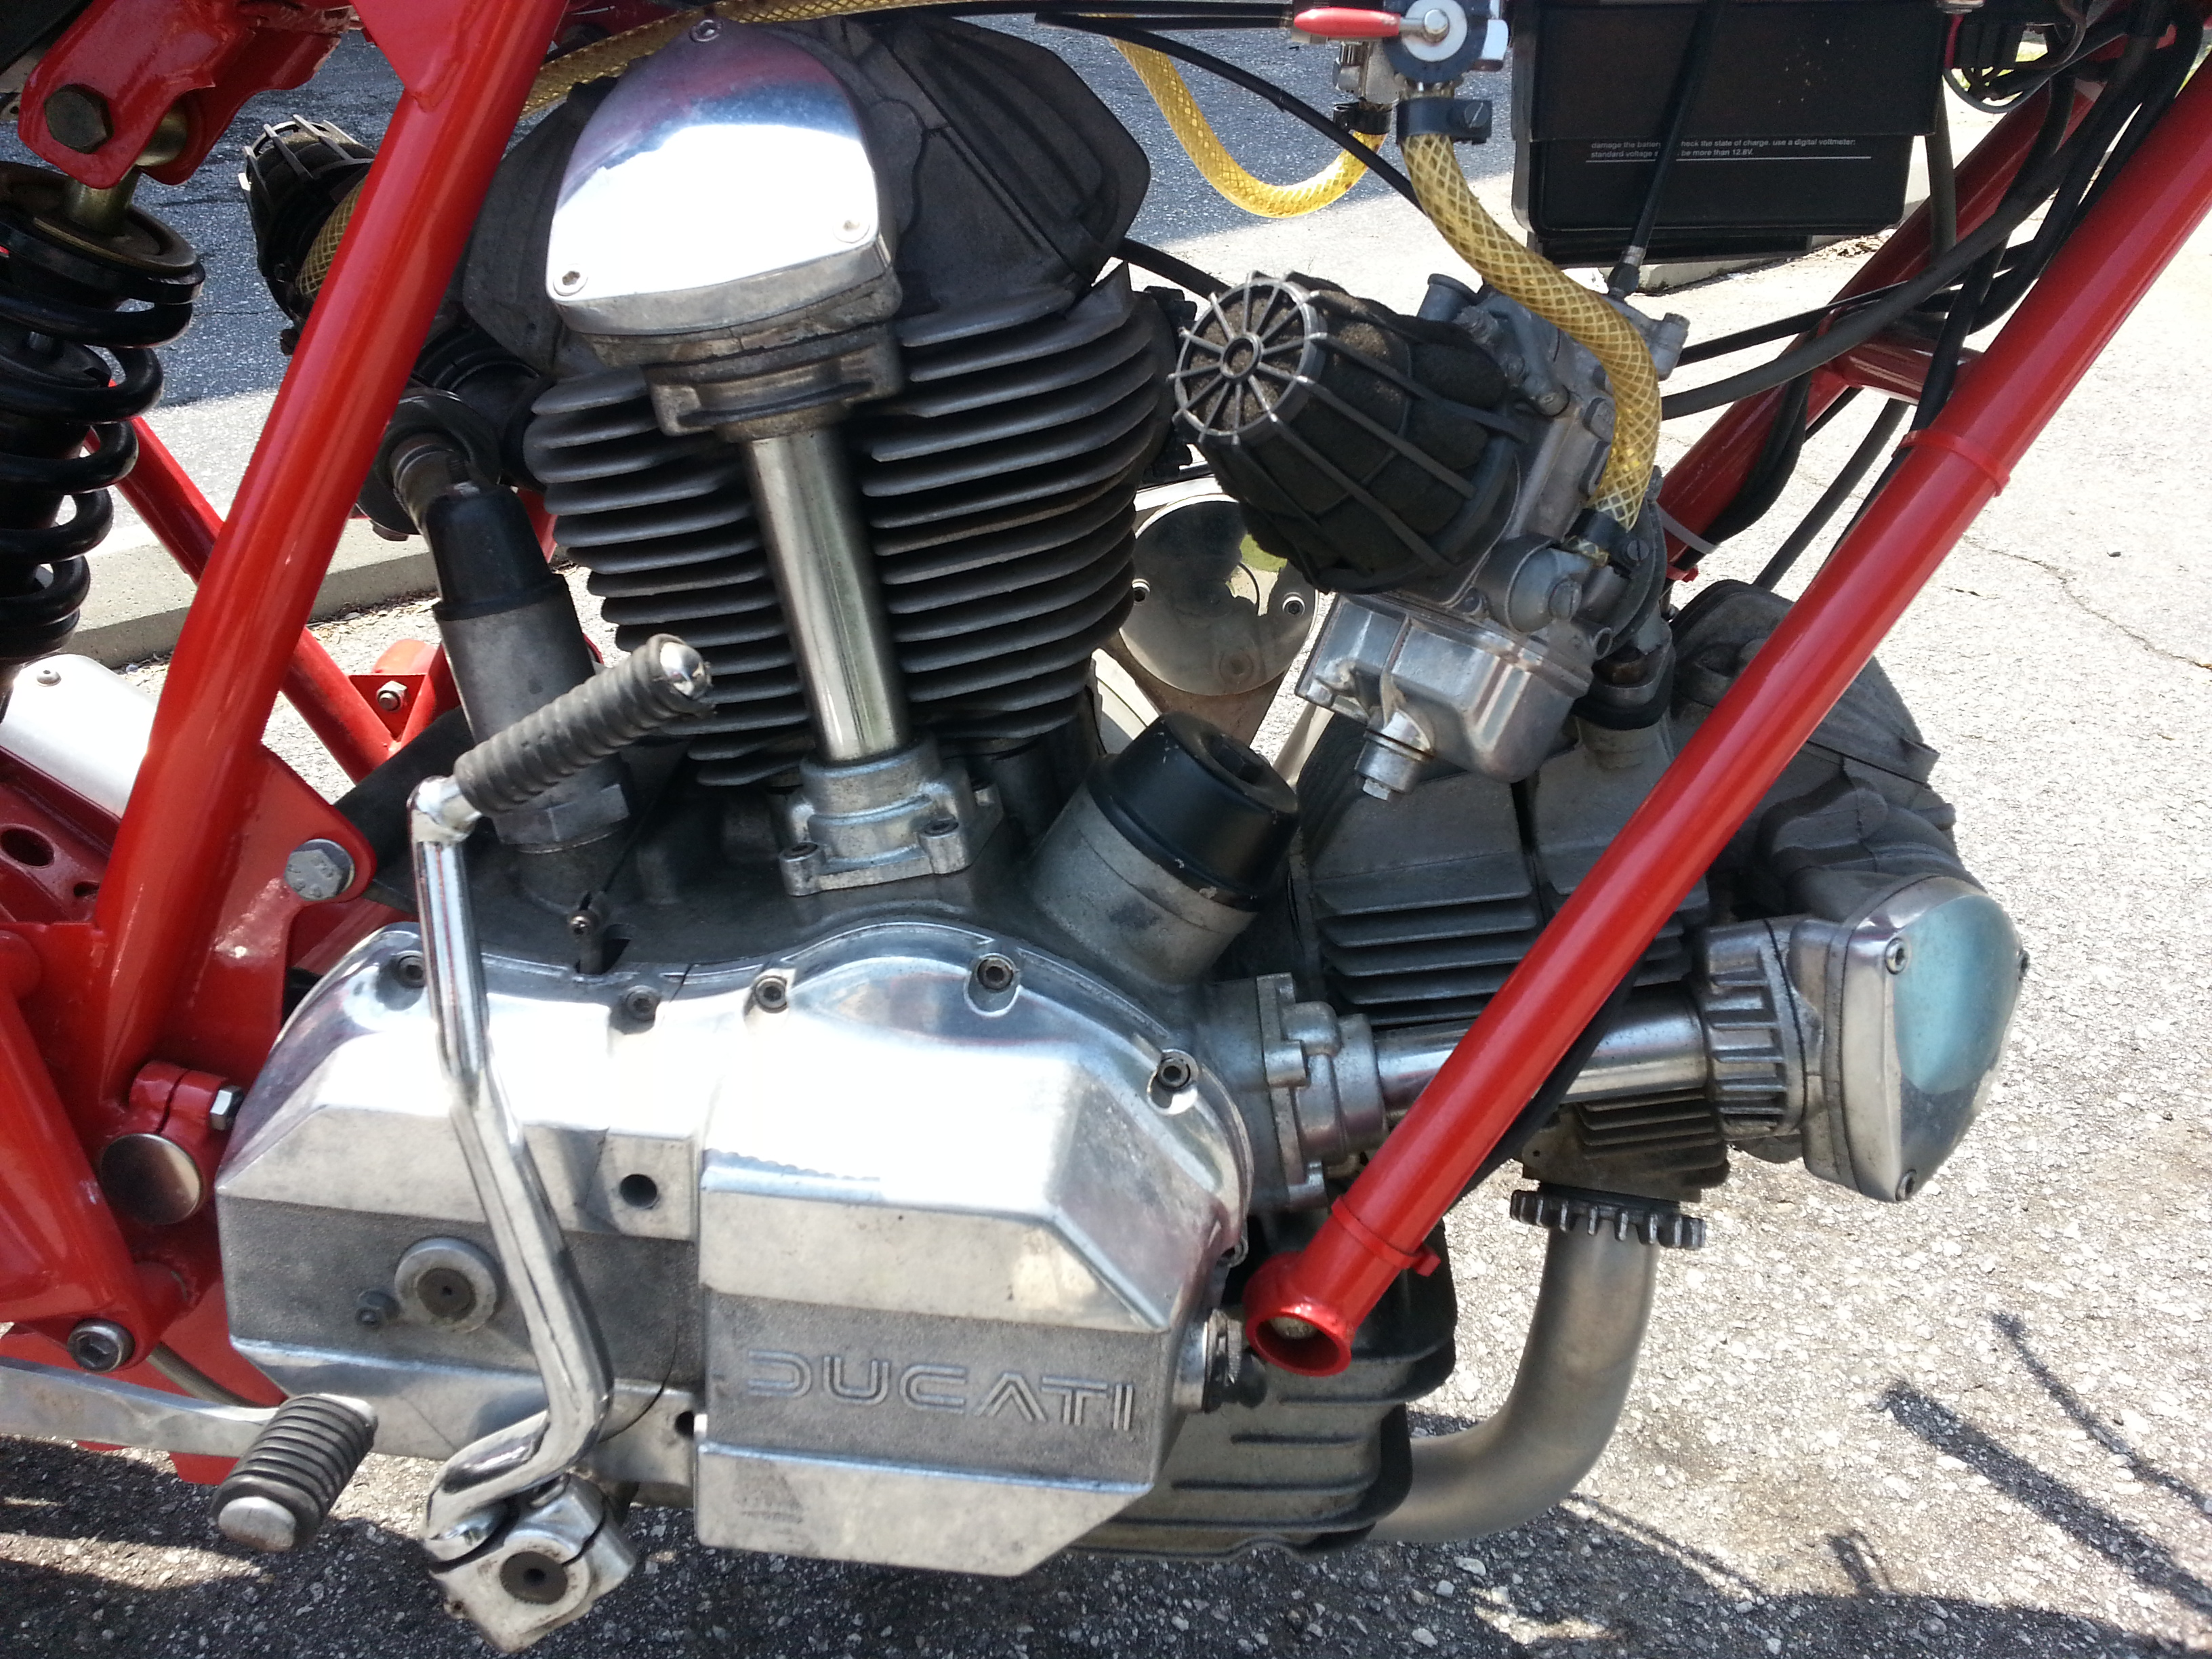 1973 Ducati 750 860 Cafe Racer Street Tracker Cant Decide What Im Wiring Harness Attached Images